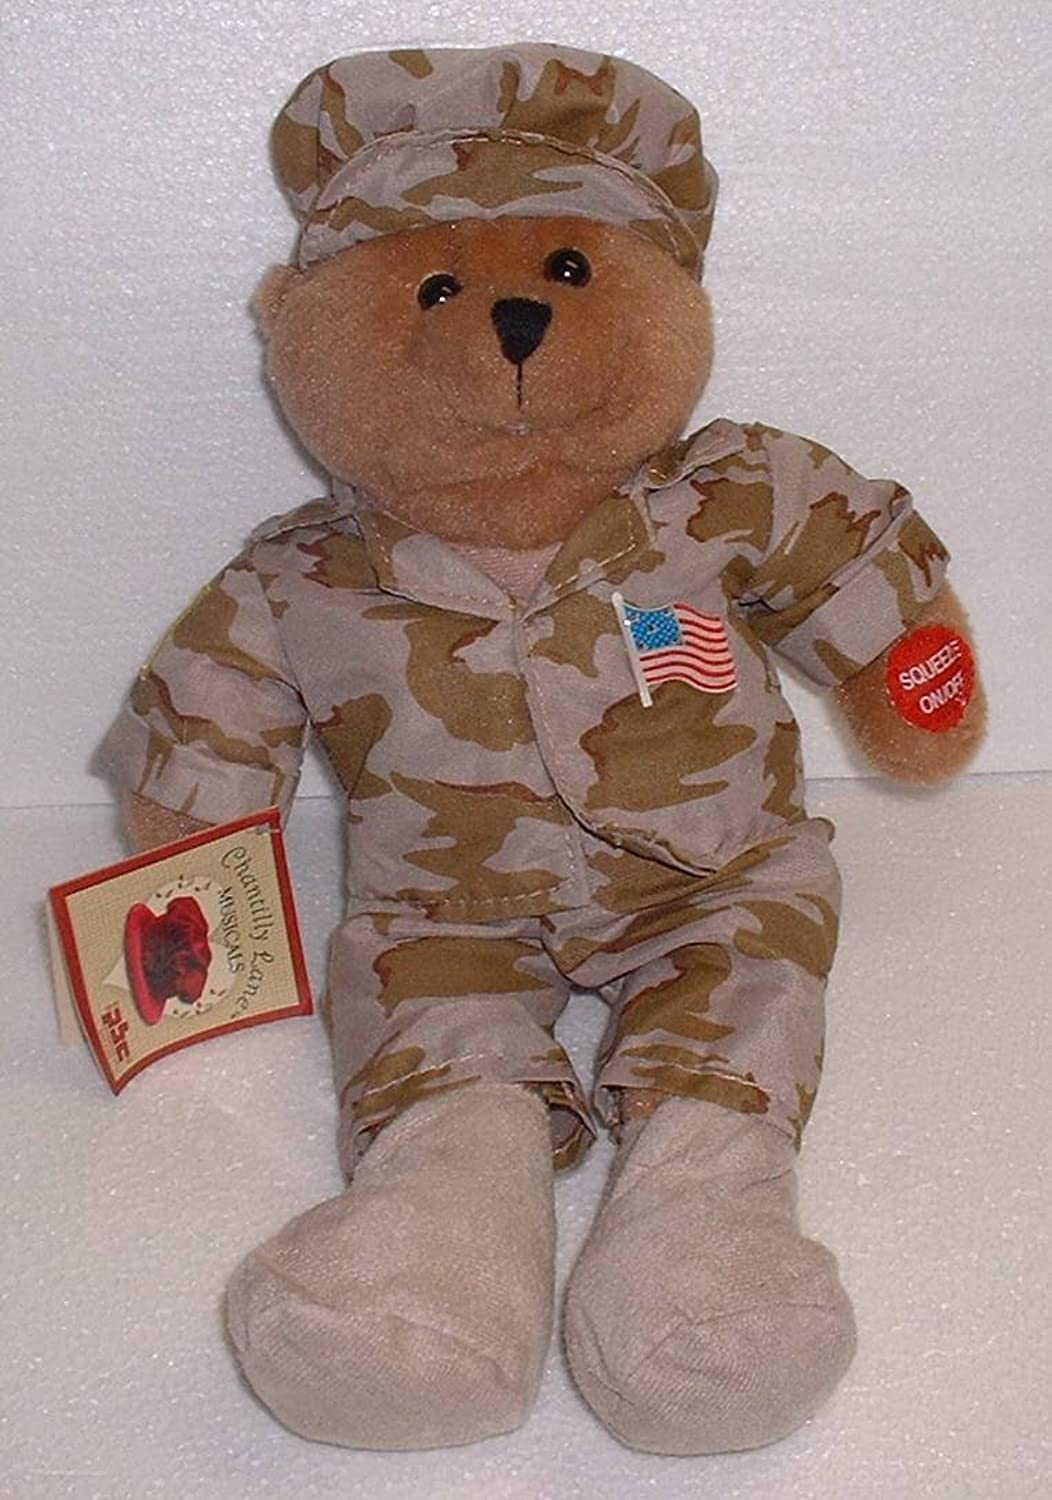 US Military Desert Fatigue Teddy Bear Plays God Bless the USA by Chantilly Lane